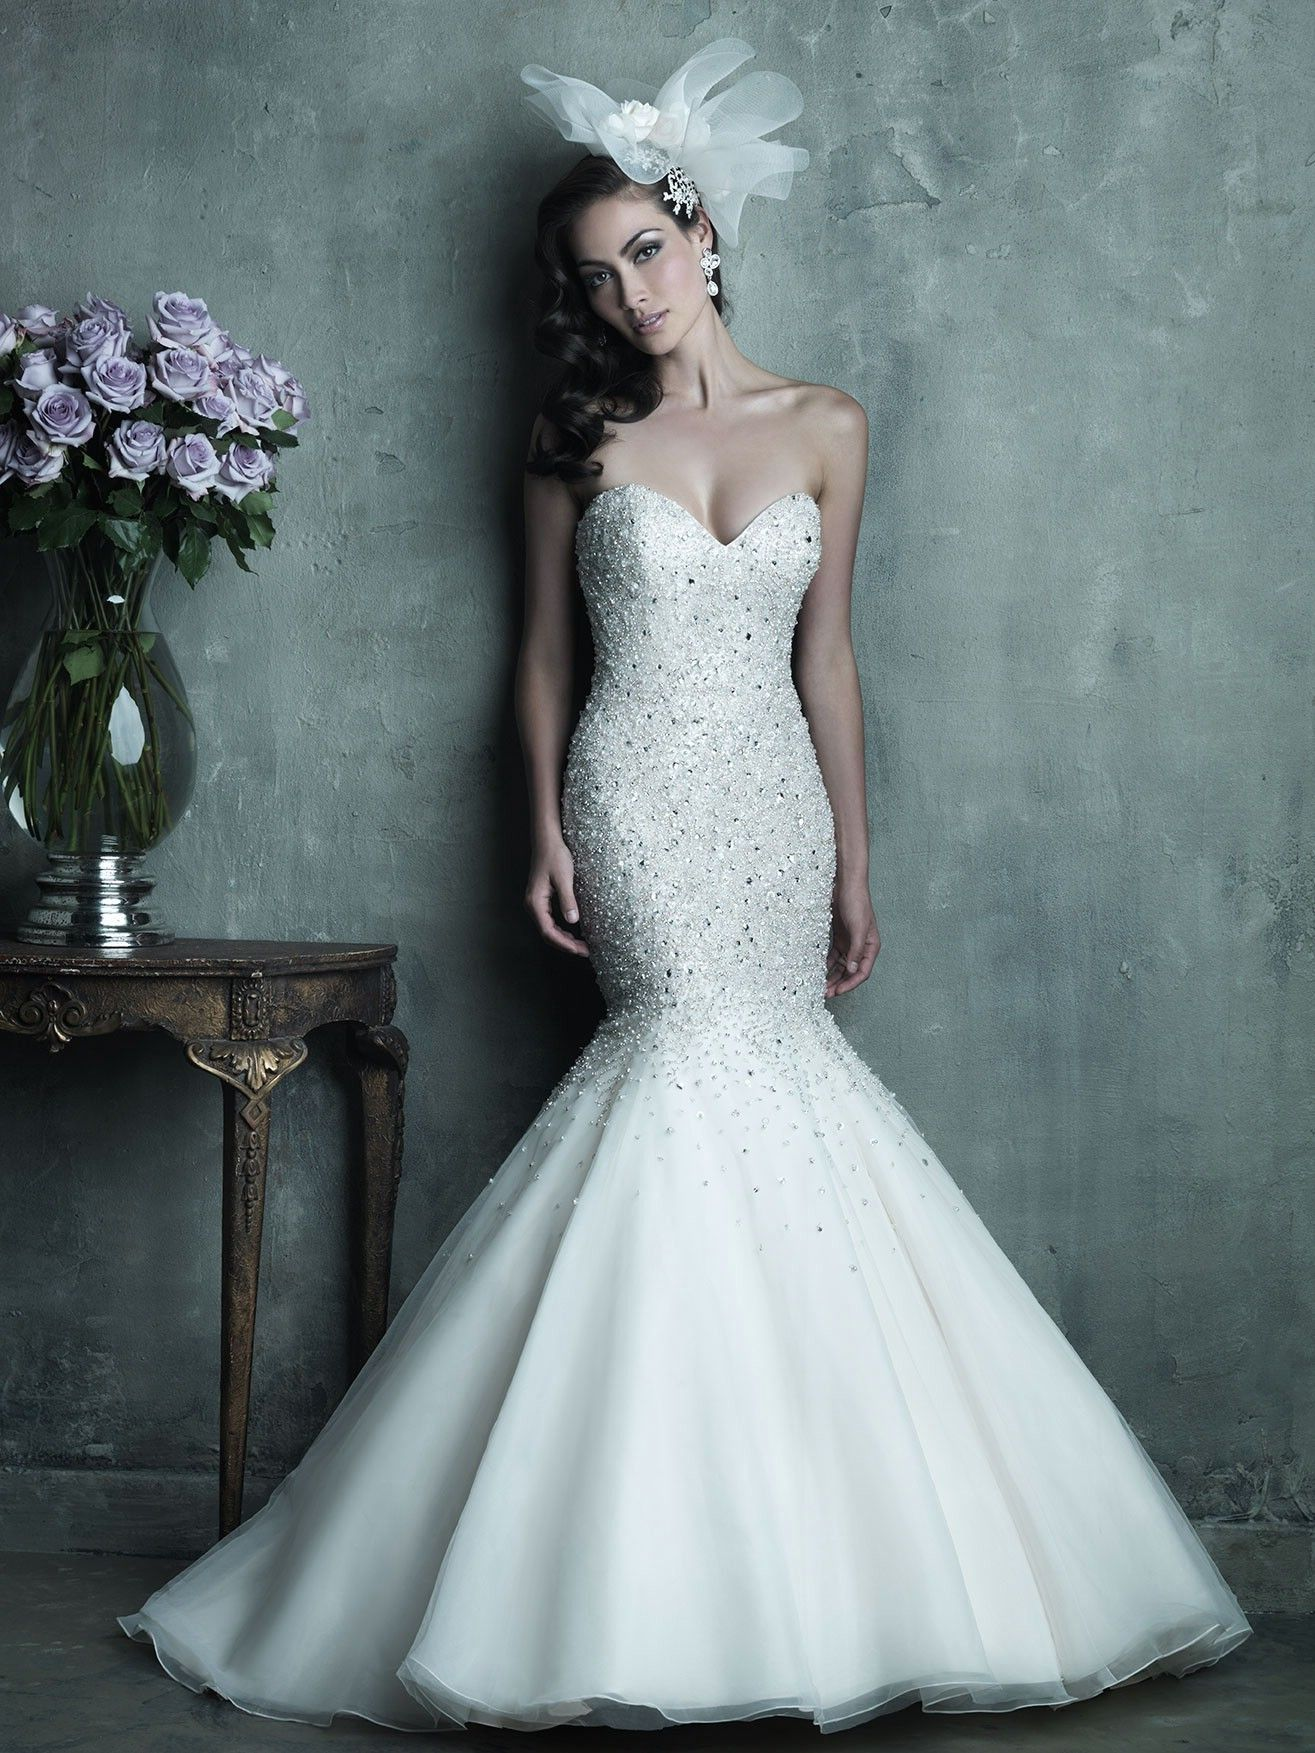 2c93720df2fb Fabulous sparkly mermaid gown! Allure Couture Wedding Dresses - Style C286 # wedding #dresses